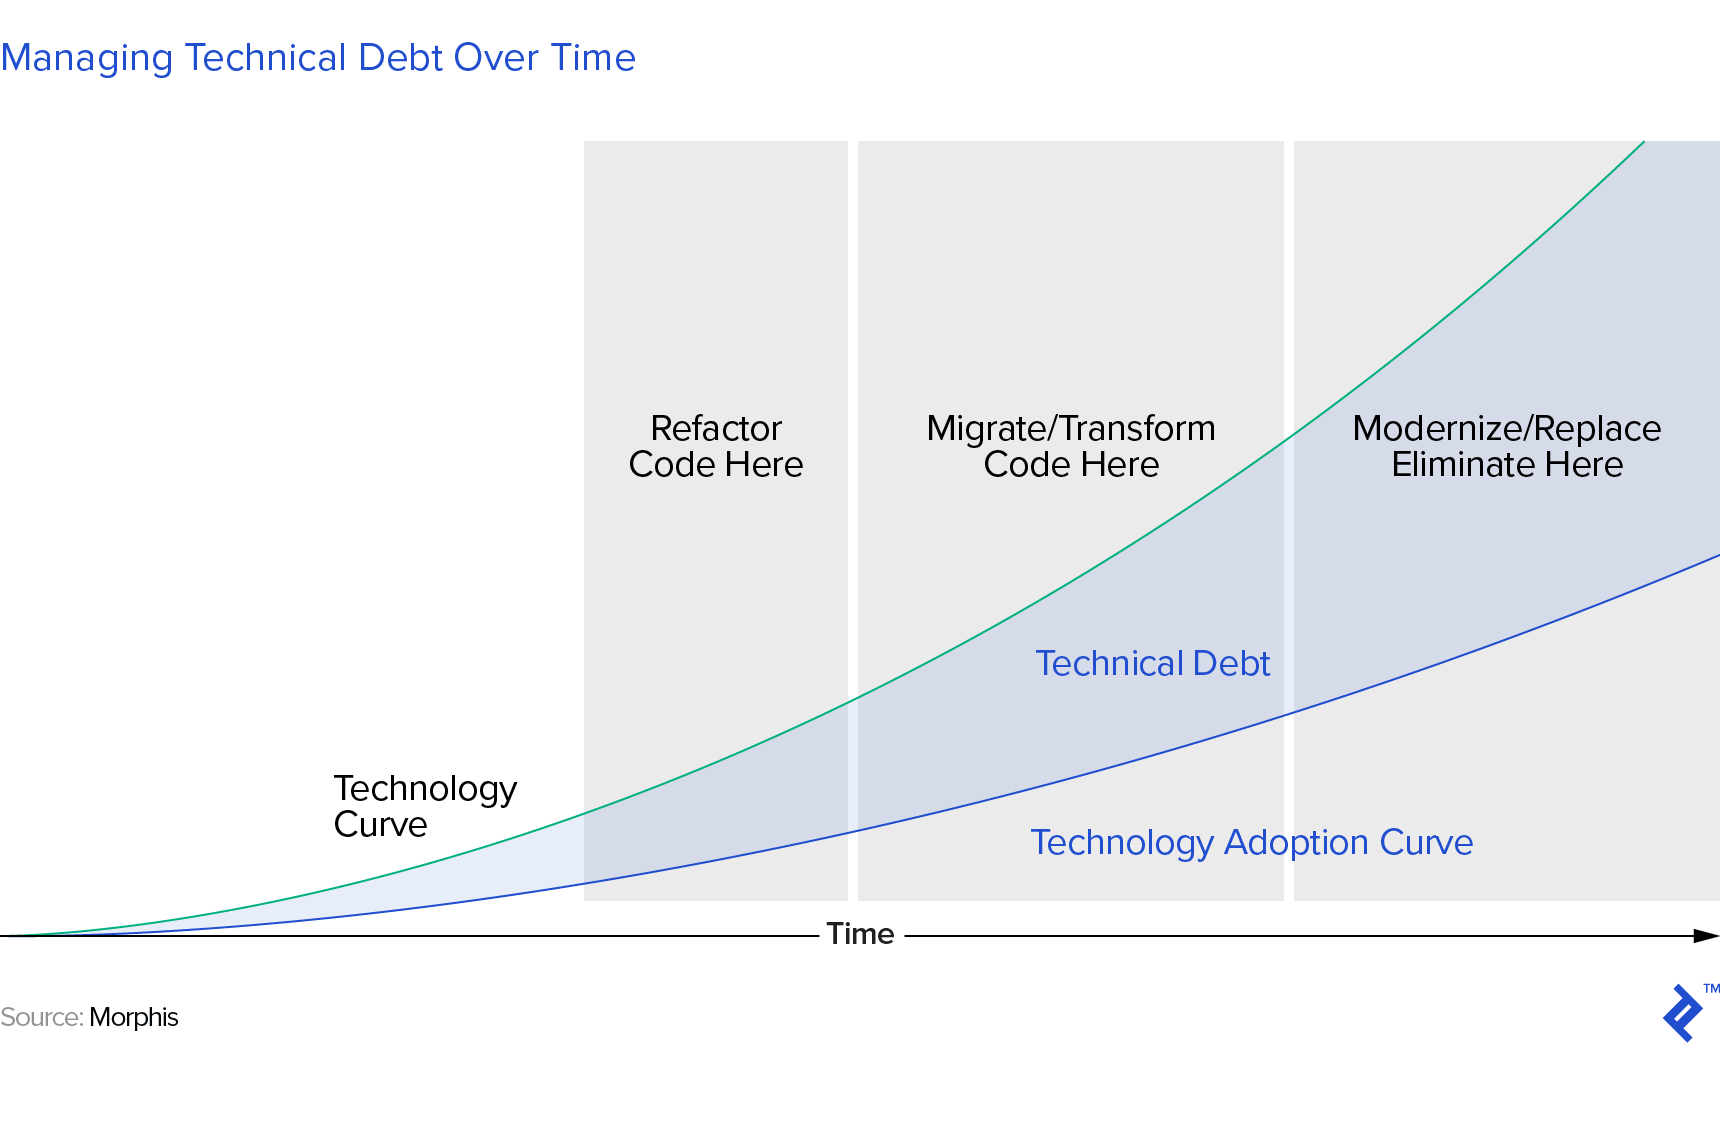 a graphic illustration of the steps to managing technical debt over time